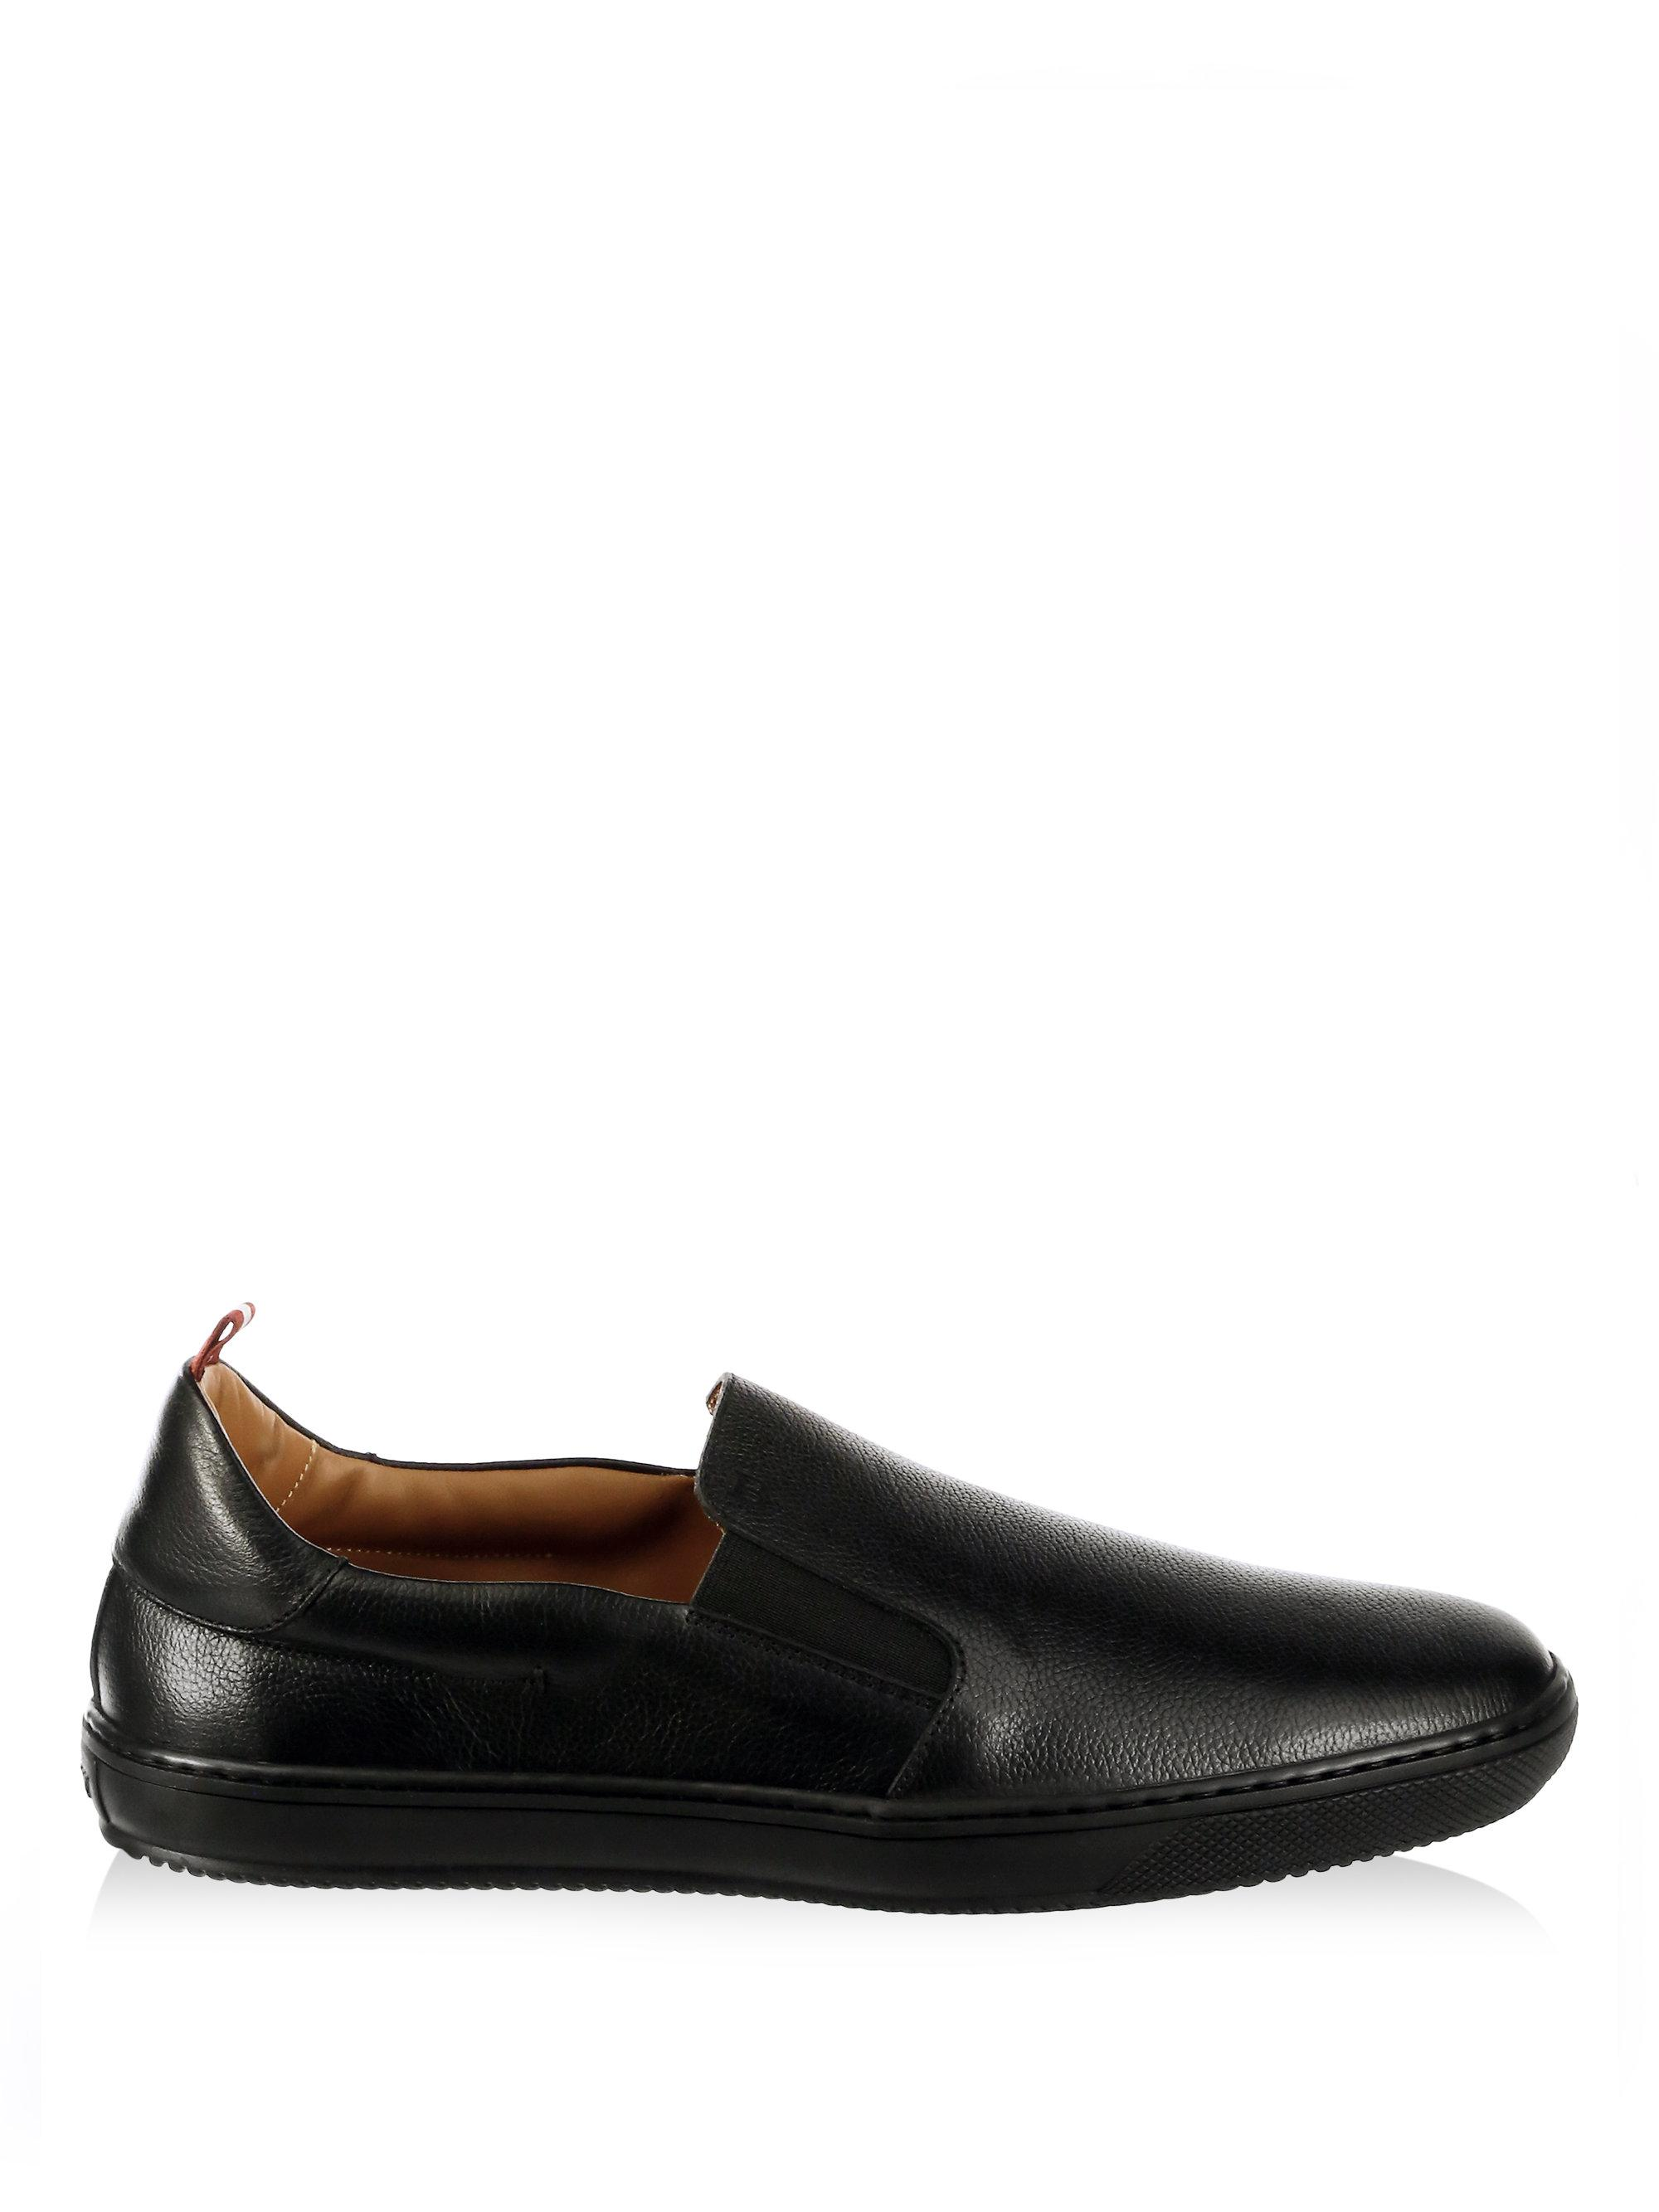 Bally Orniel Leather Slip-on Sneakers